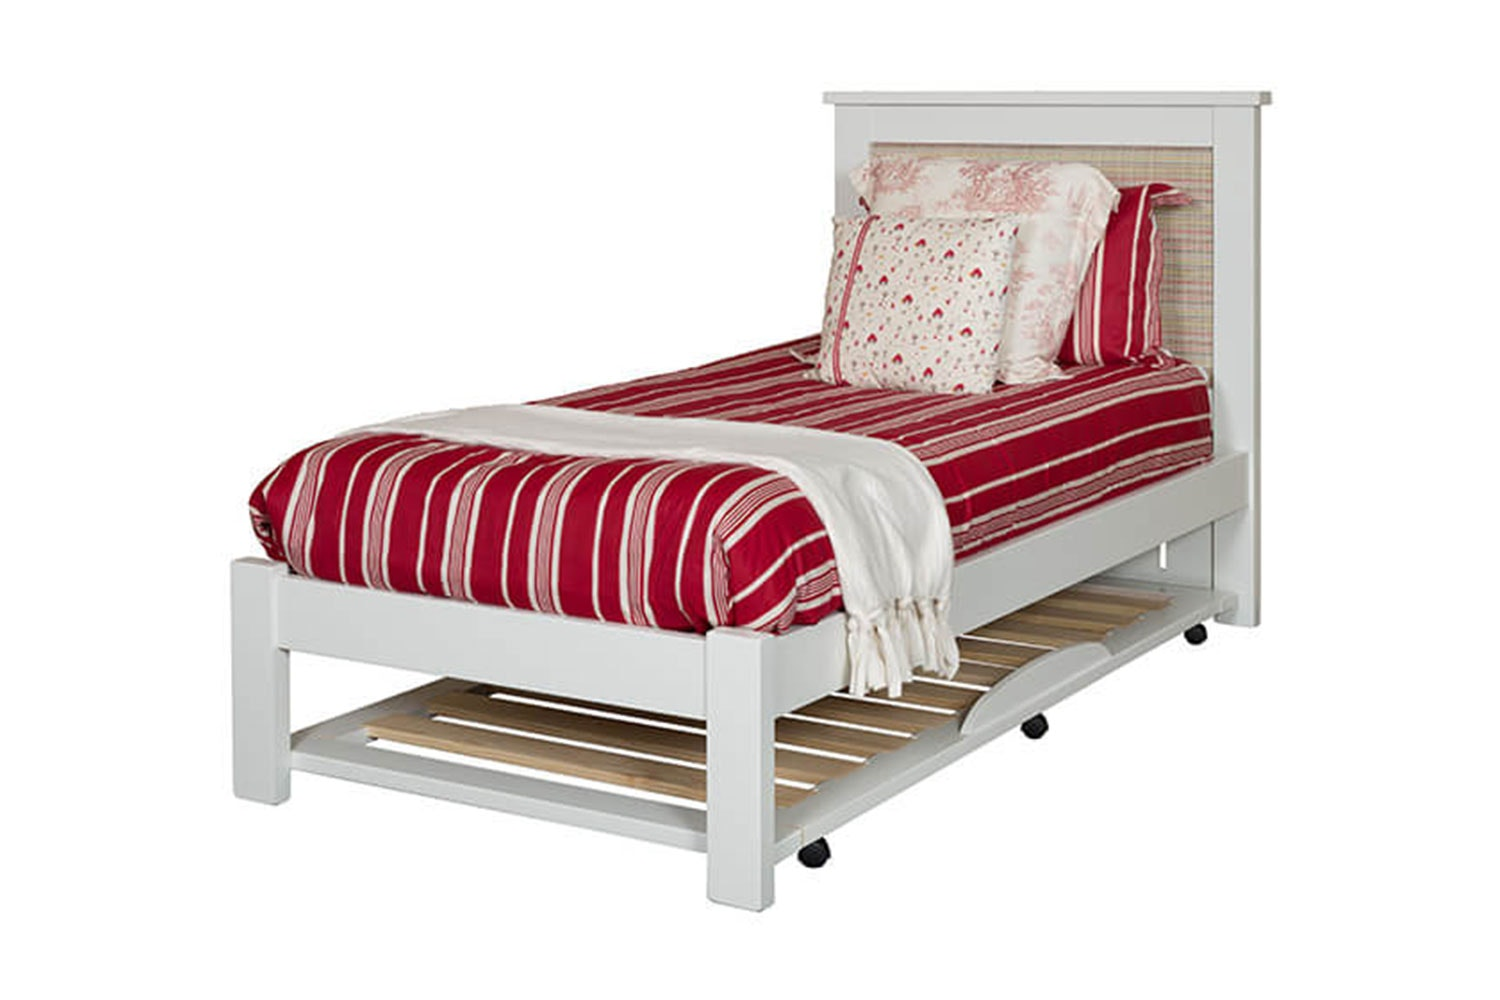 Tillsdale Kids King Single Trundler by Coastwood Furniture